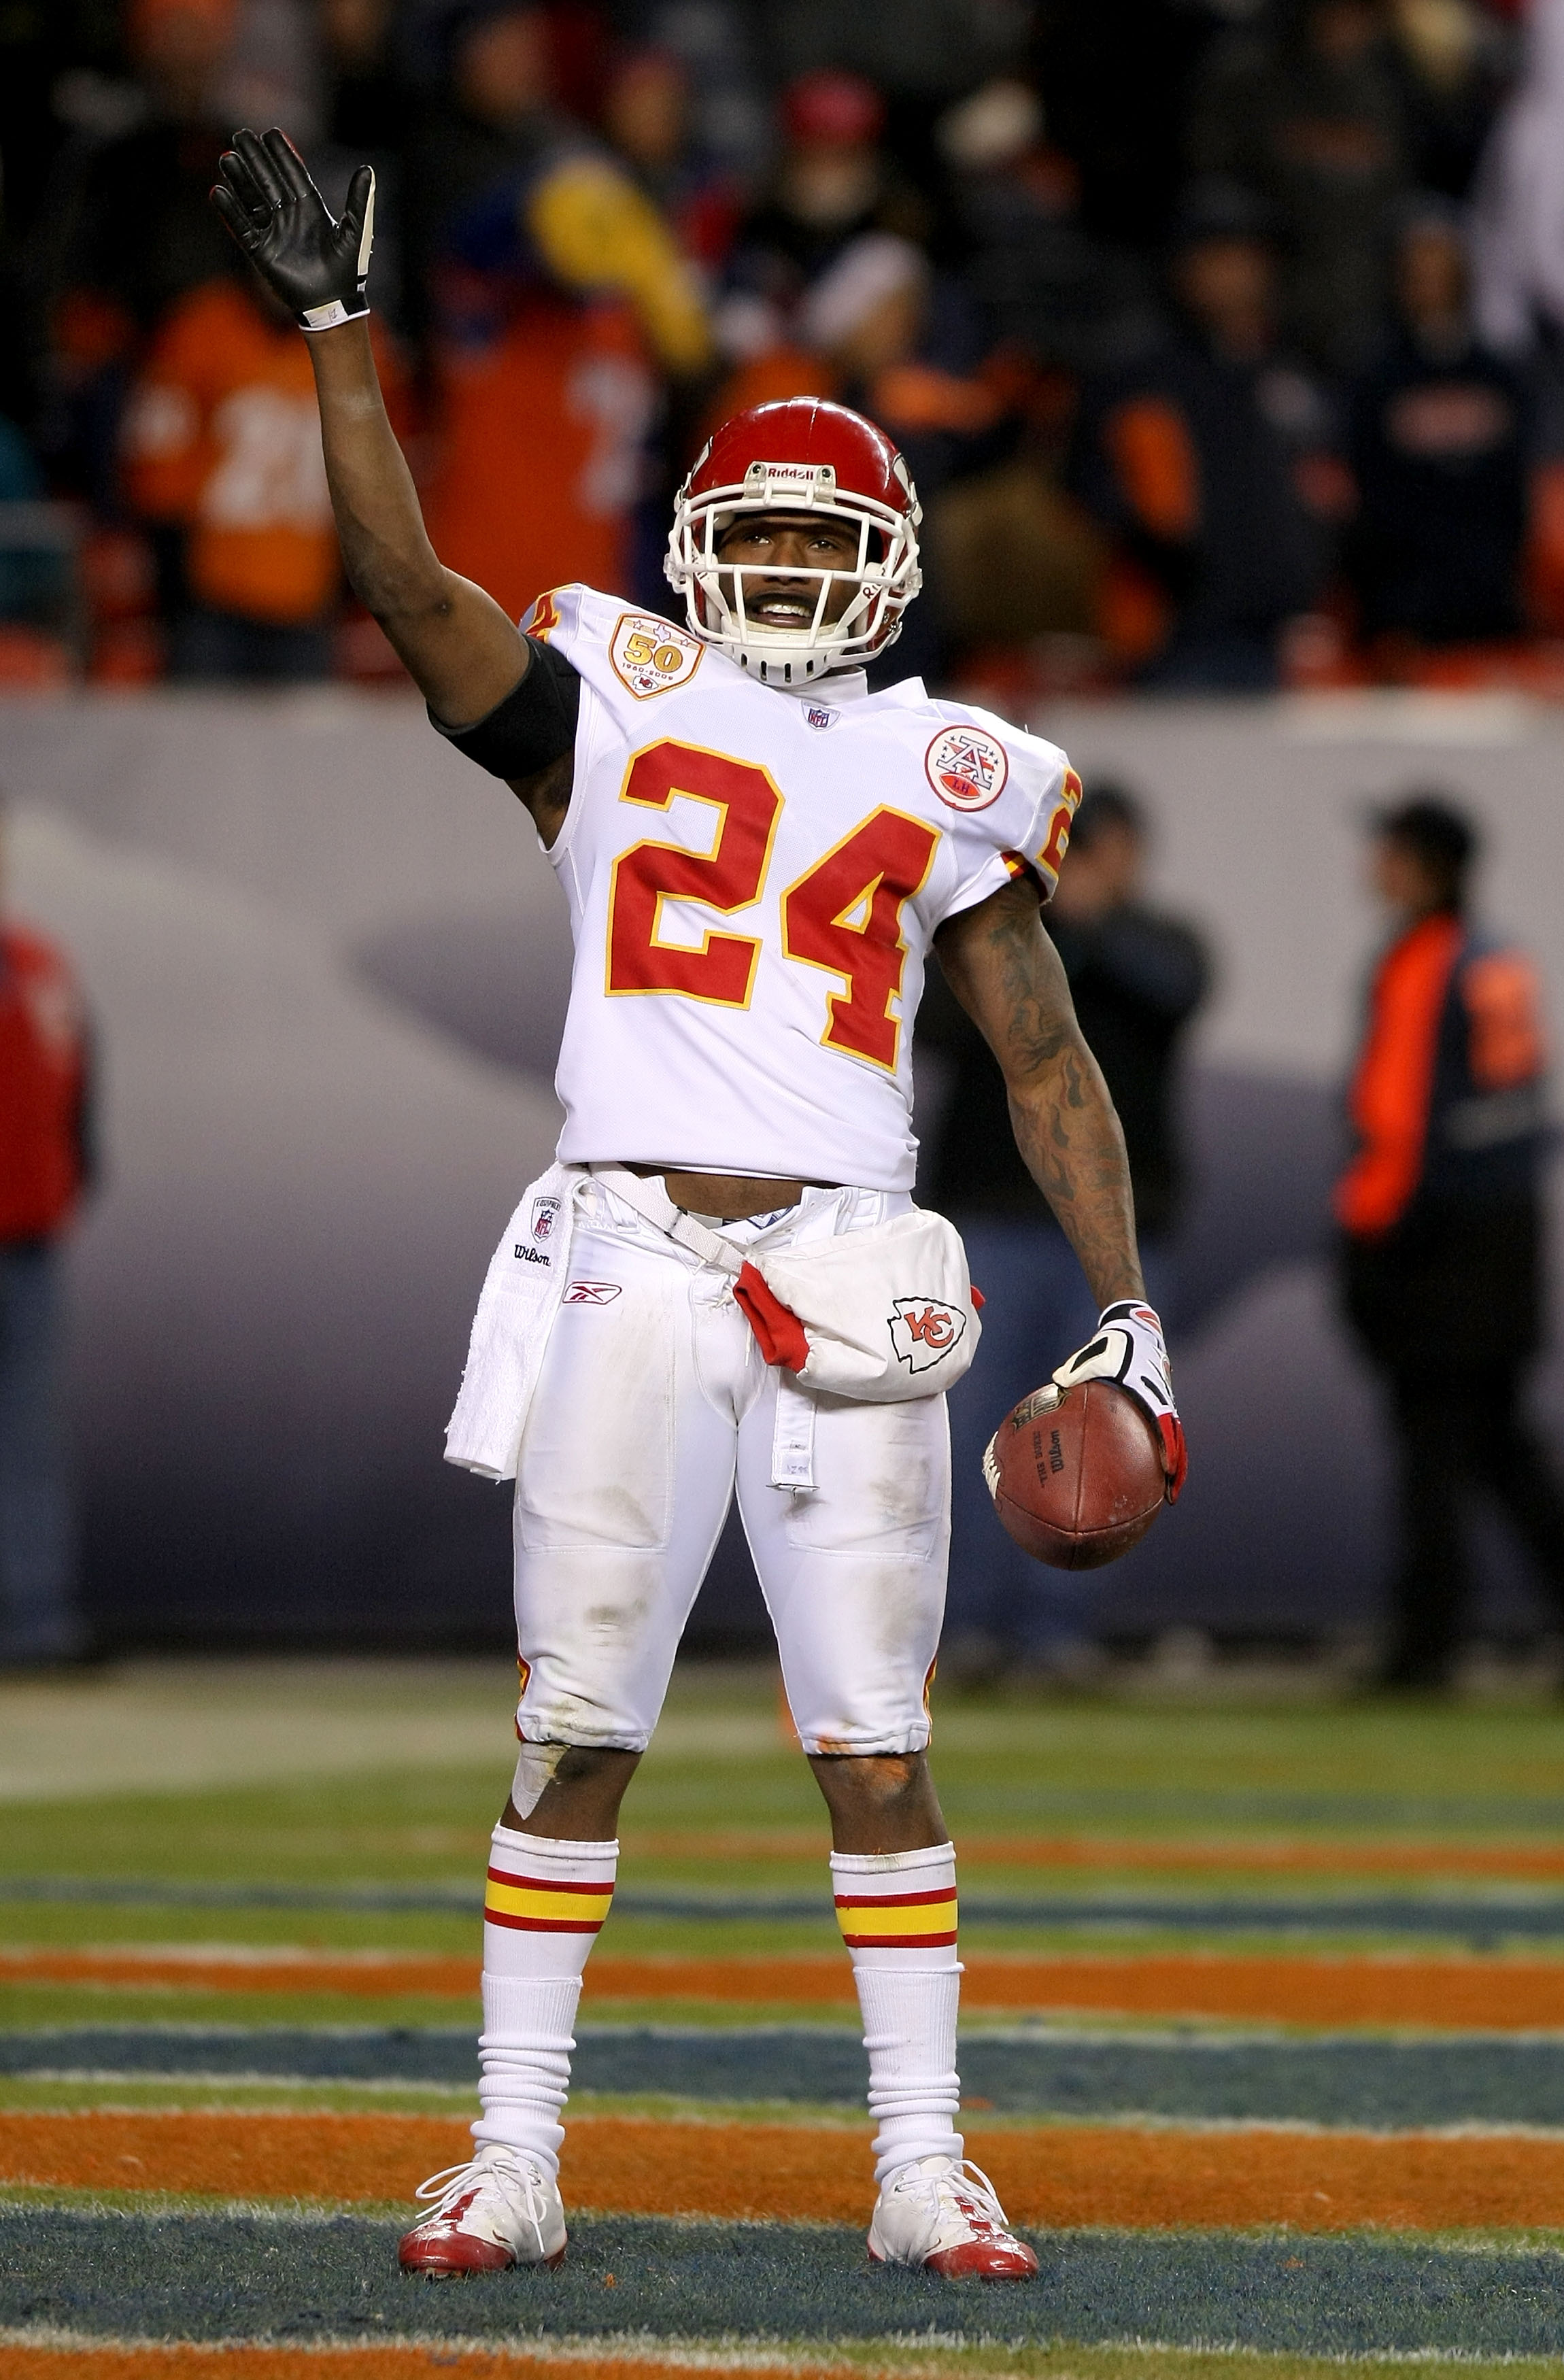 DENVER - JANUARY 03: Brandon Flowers #24 of the Kansas City Chiefs waves to the fans after intercepting a pass which was intended for Jabar Gaffney #10 of the Broncos during the fourth quarter at Invesco Field at Mile High on January 3, 2010 in Denver, Co